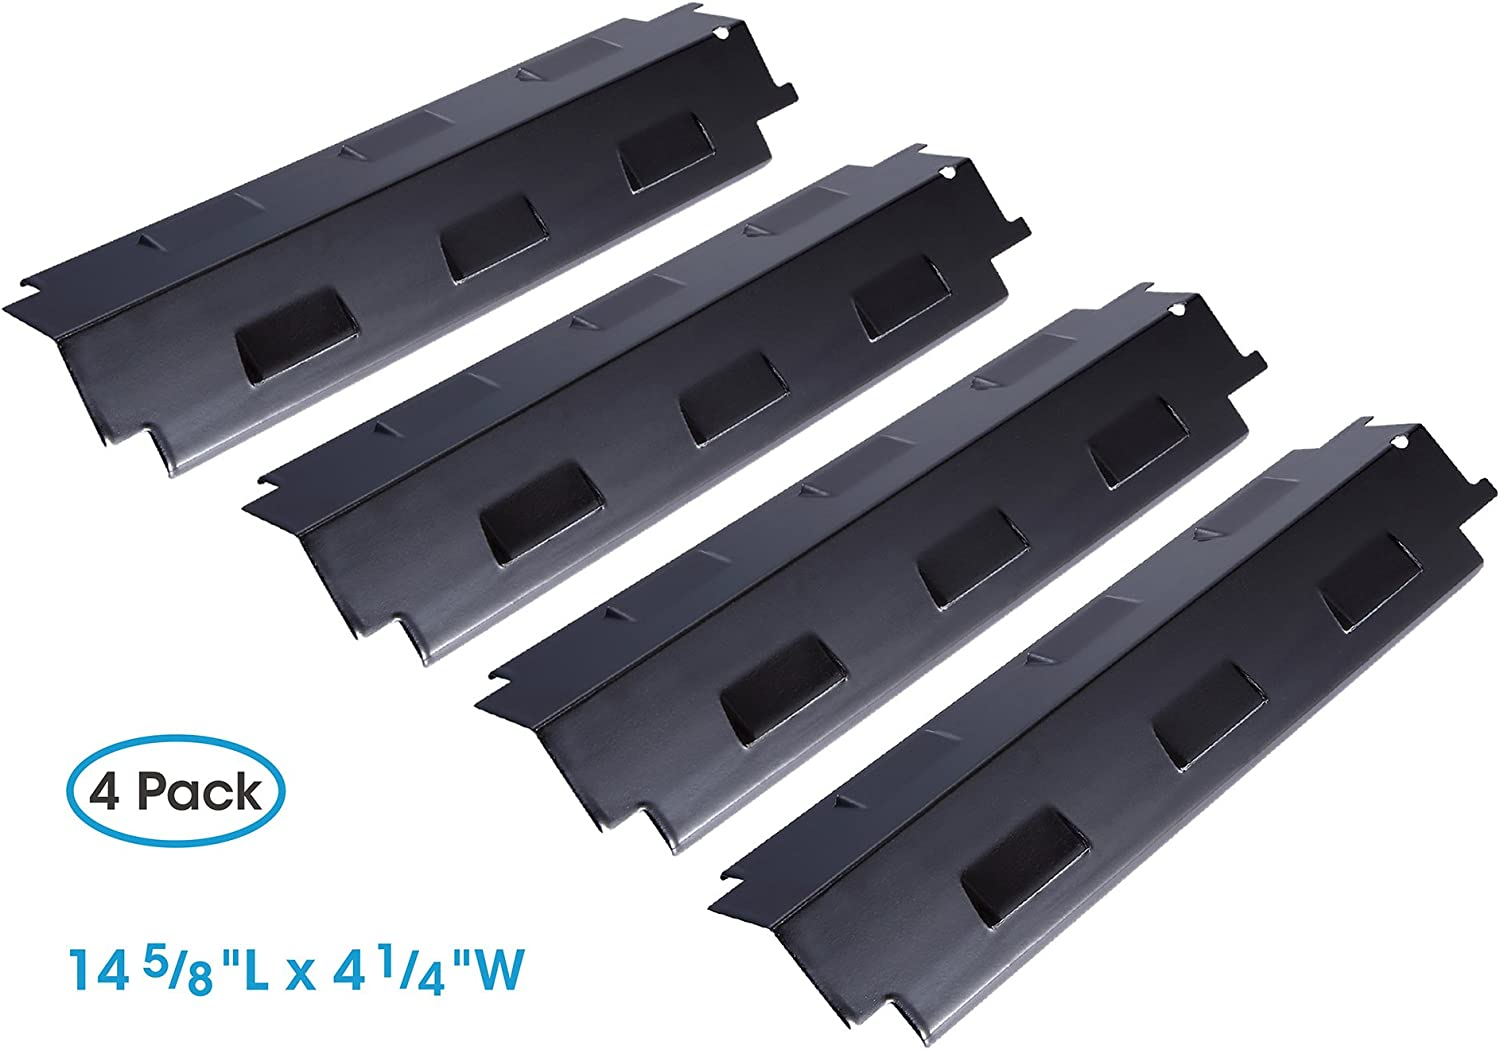 BBQ Parts Grill Heat Plates Flame Tamer Cover Porcelain Steel Replacement 4 Pack